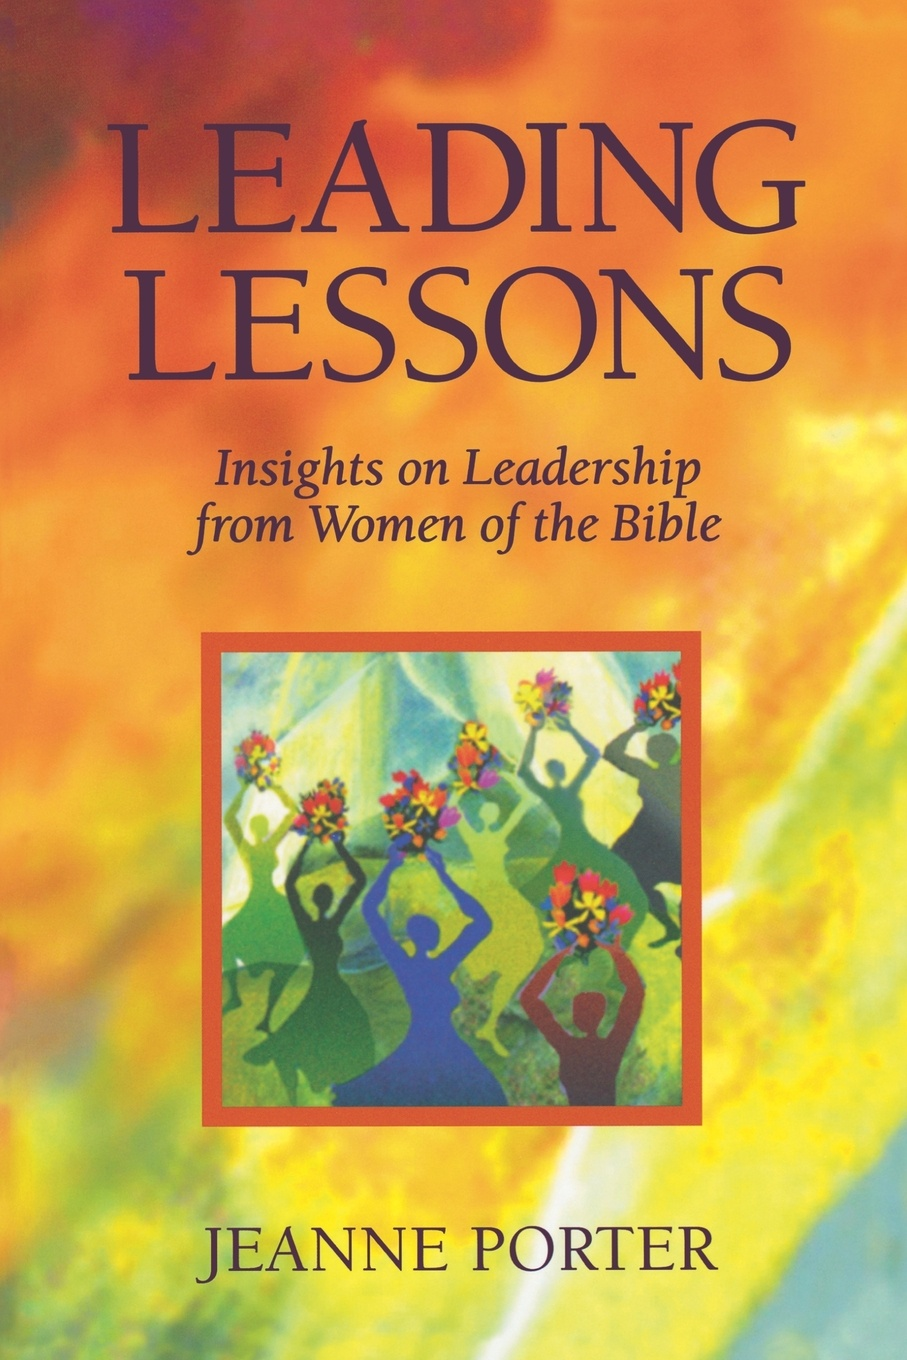 Фото - Jeanne Porter Leading Lessons. Insights on Leadership from Women of the Bible debashis chatterjee timeless leadership 18 leadership sutras from the bhagavad gita